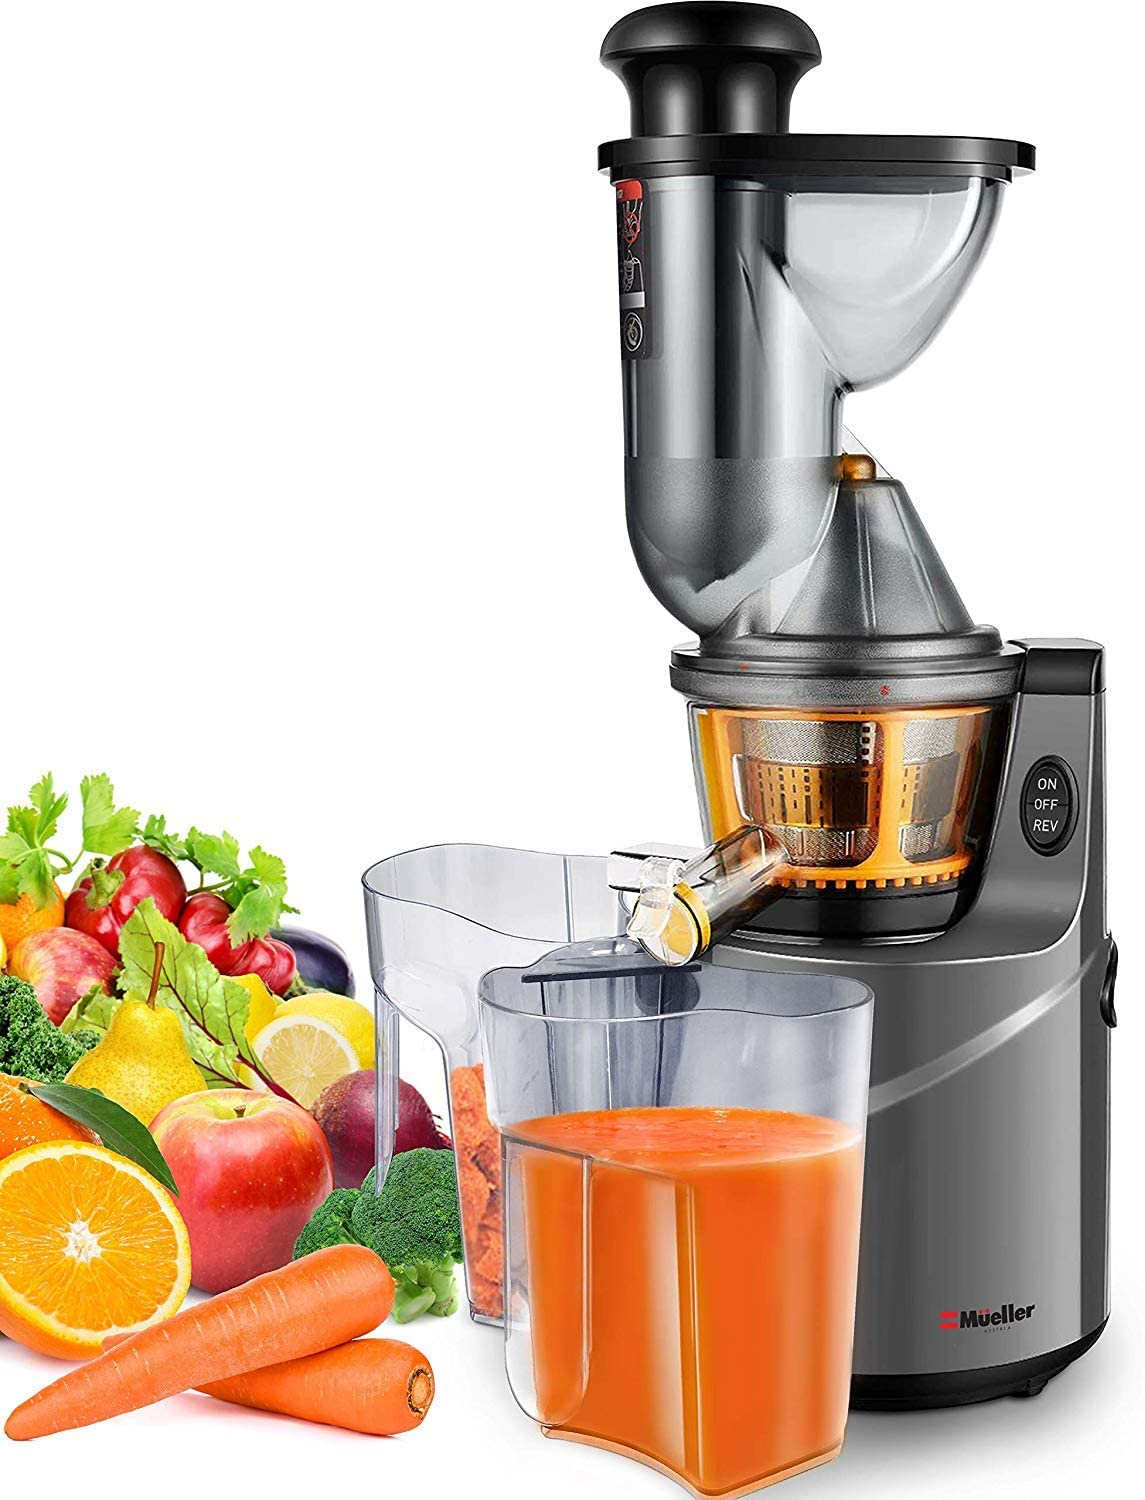 71f pXWi3tL. AC SL1500 Best Juicer Under $100 2021 - TOP Reviews & Buying Guide